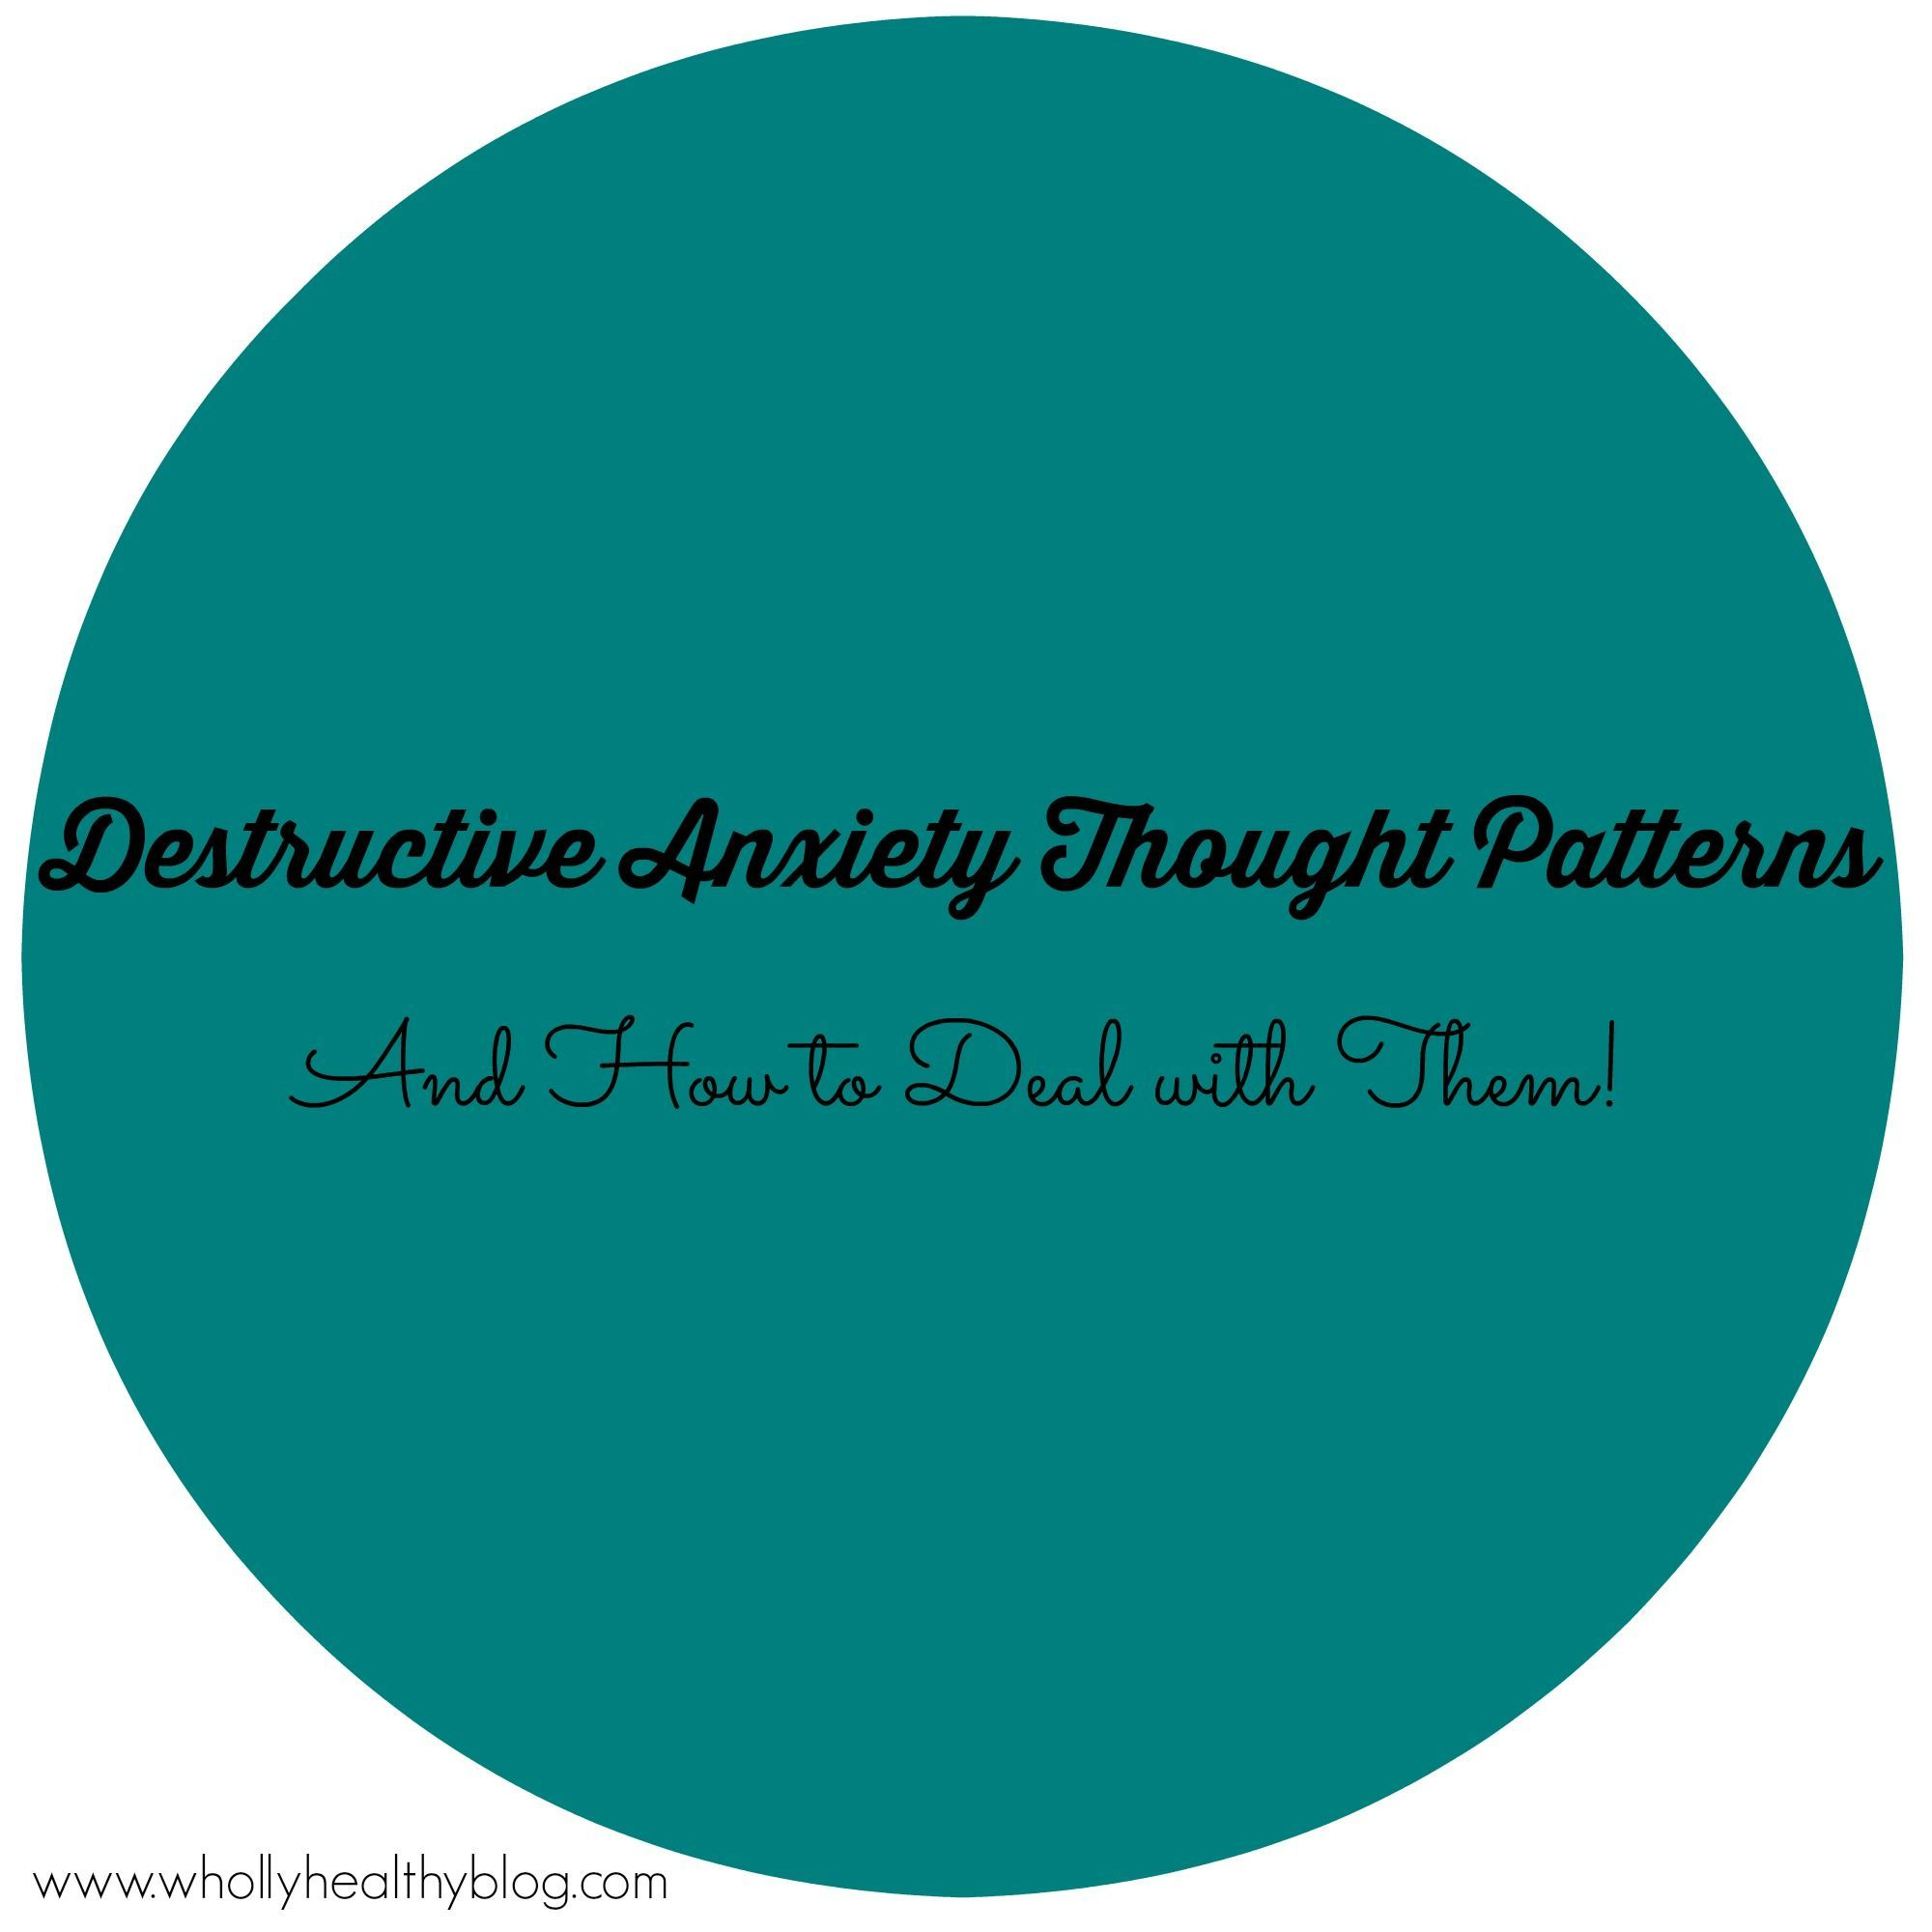 Intrusive Thoughts and Feelings With High Anxiety